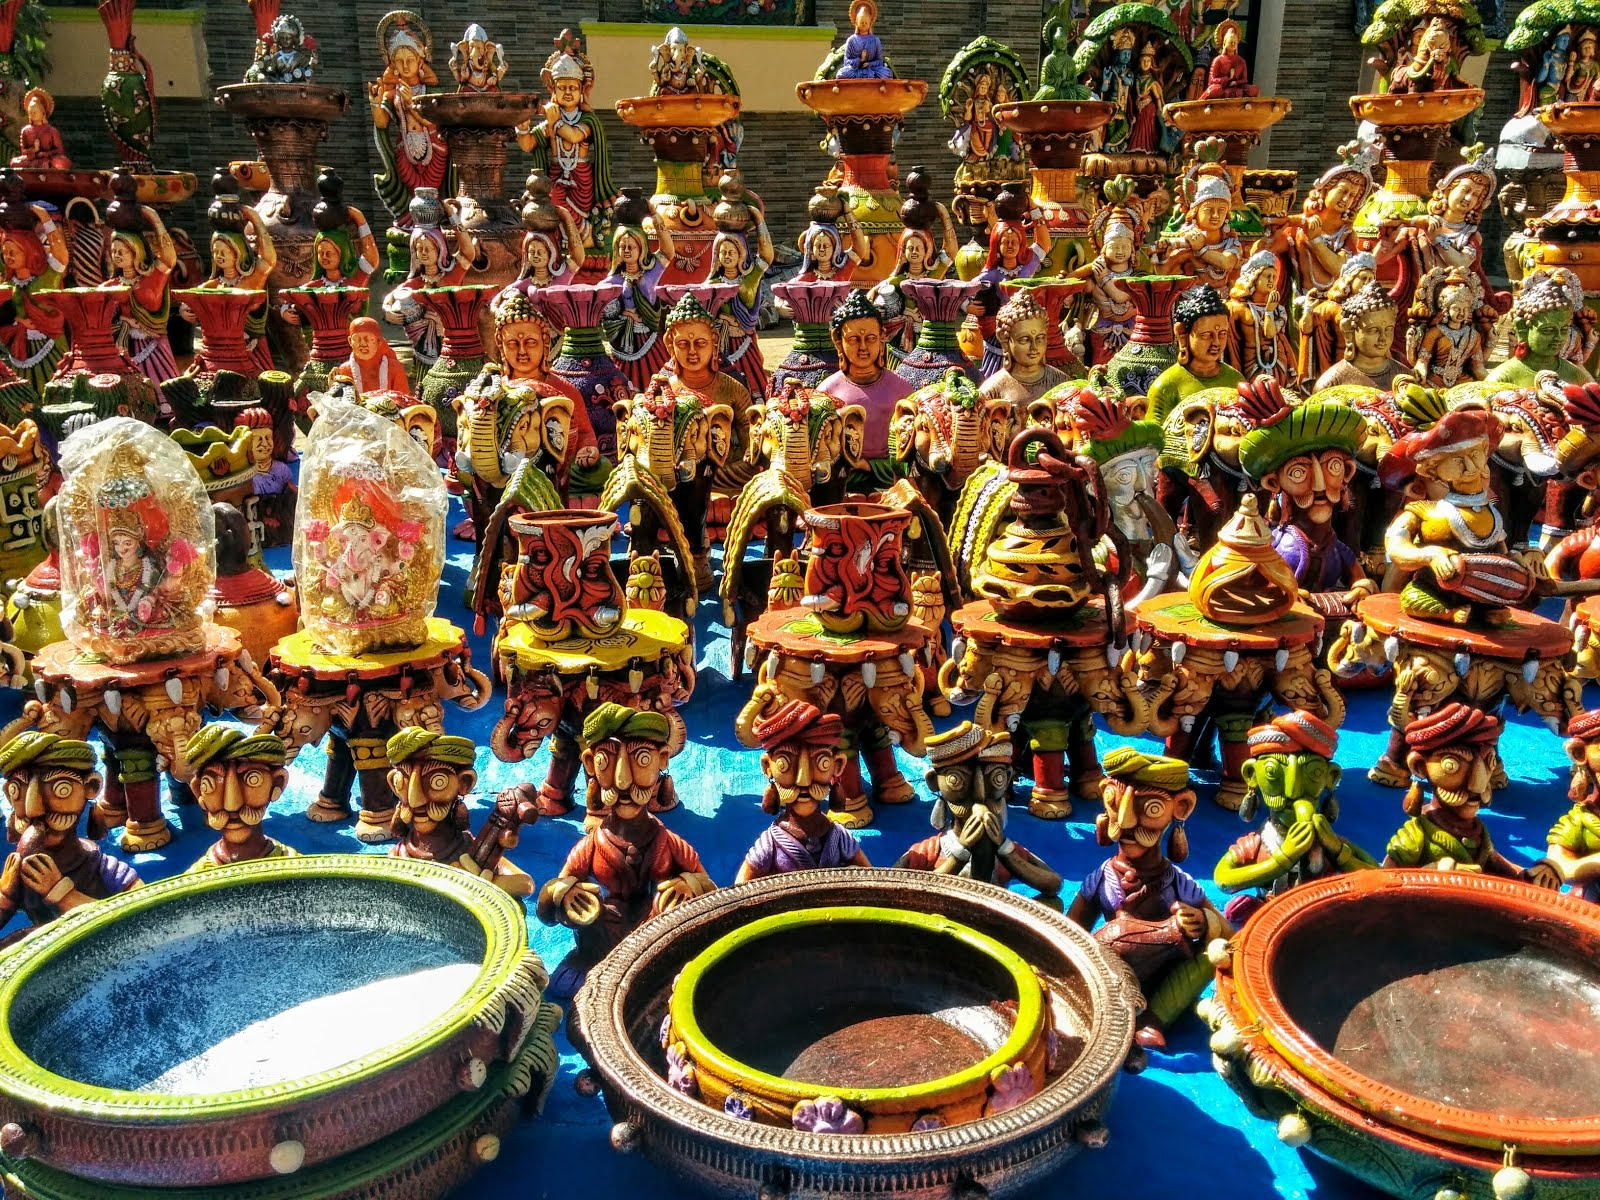 Colorful Pottery on Display at Kadalekai Parishe